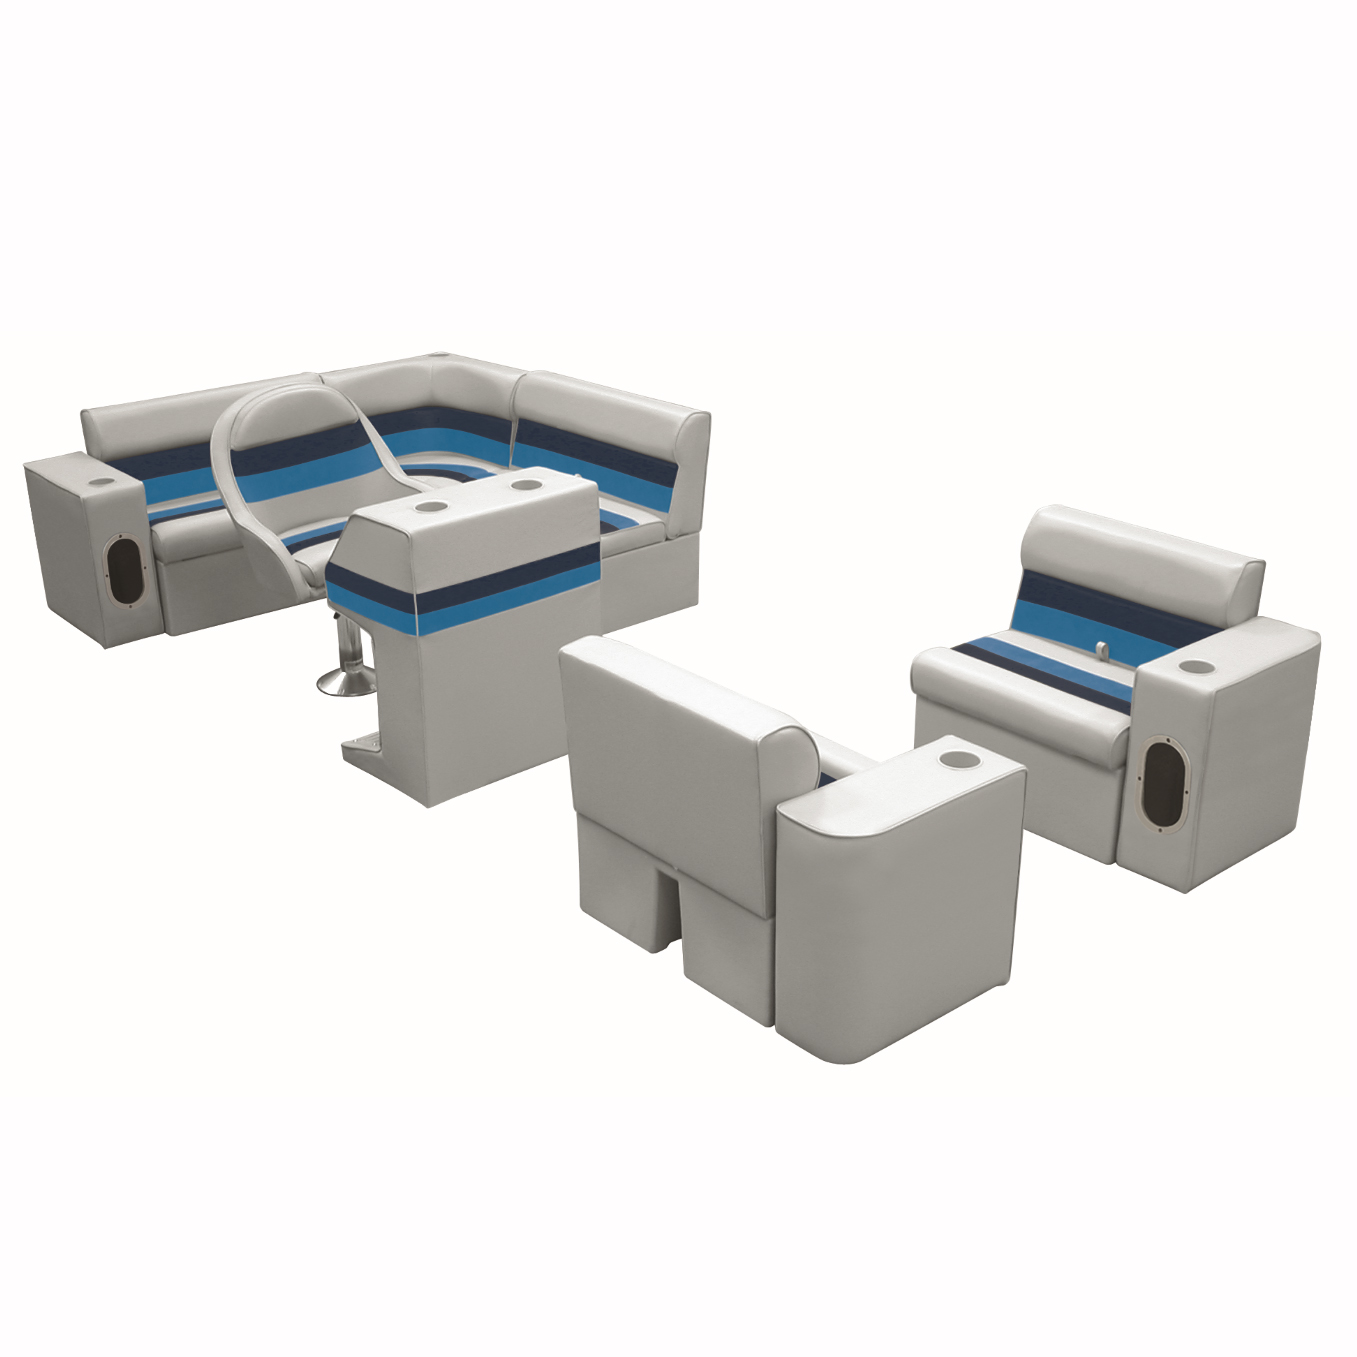 Deluxe Pontoon Furniture w/Classic Base - Complete Boat Package H, Gray/Navy/Blu